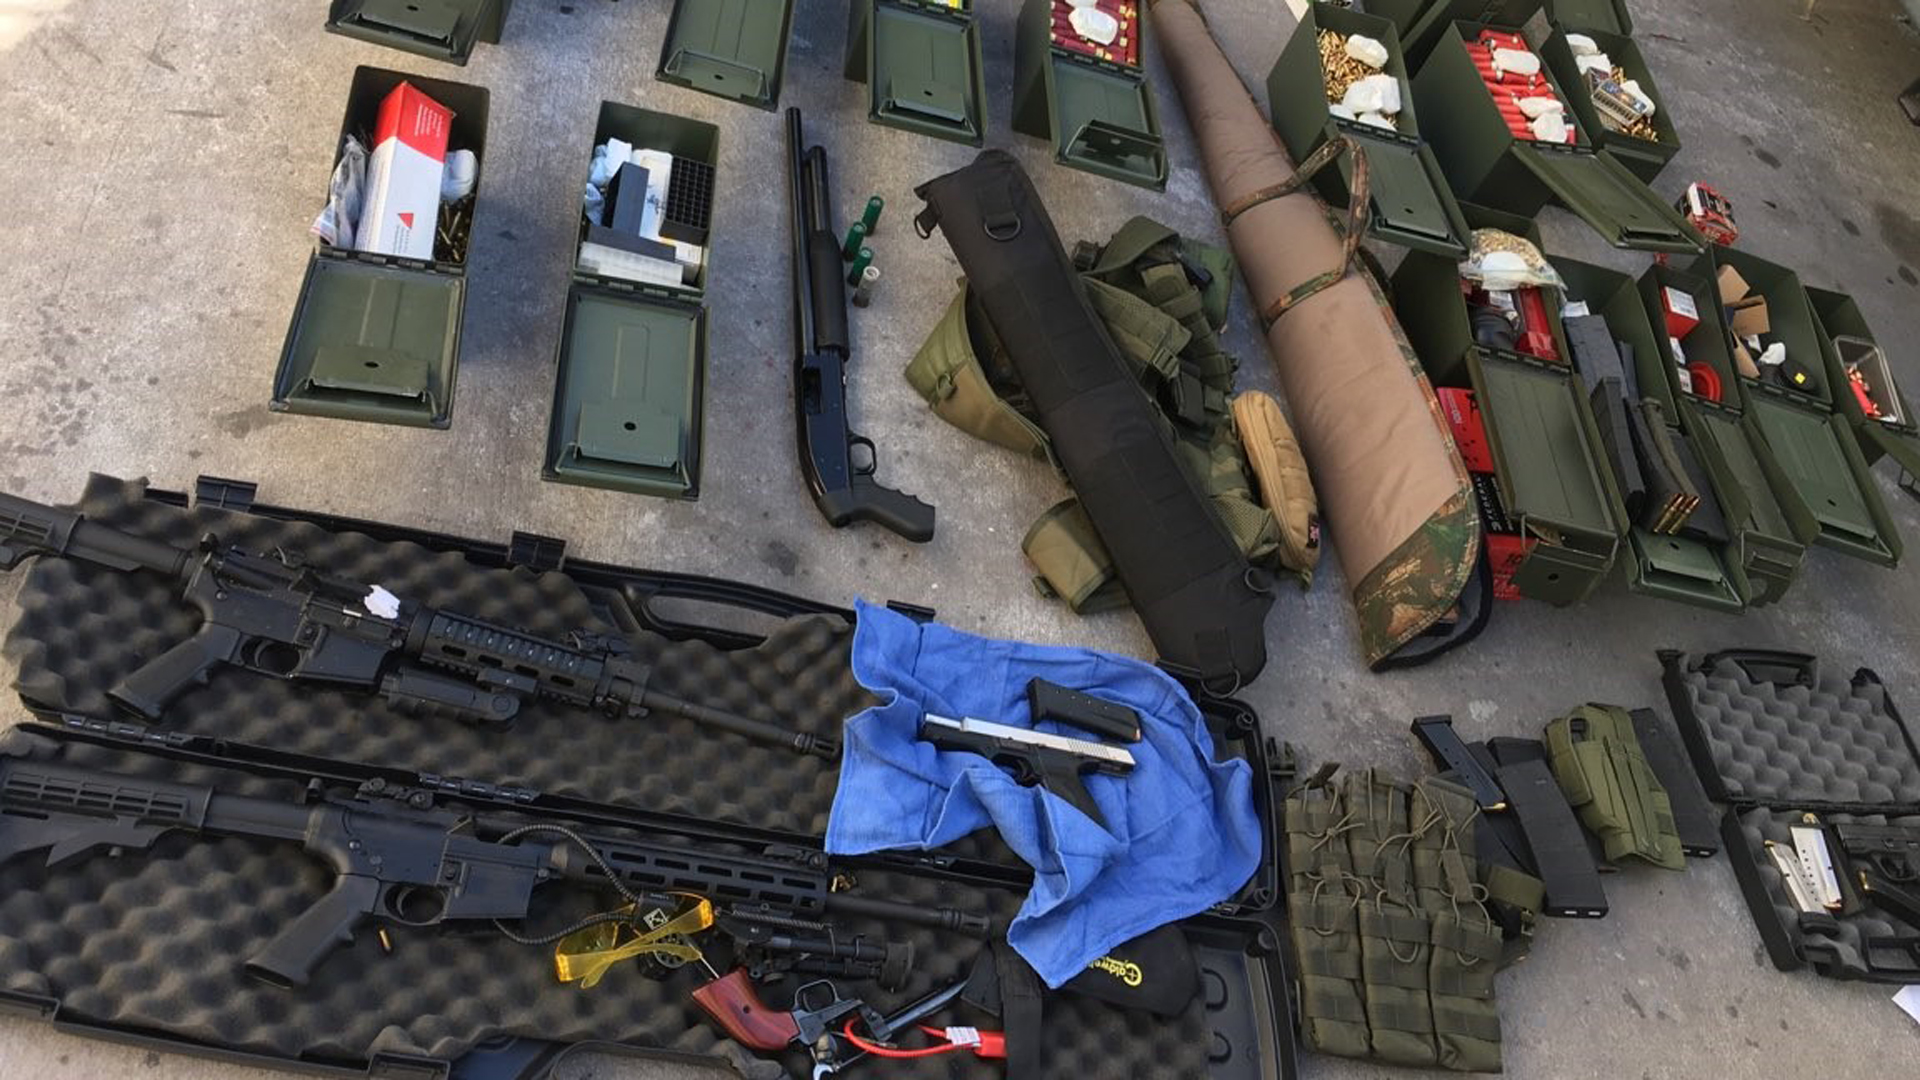 Police released this photo of the weapons seized in the arrest of a man accused of threatening a mass shooting at a hotel in Long Beach.